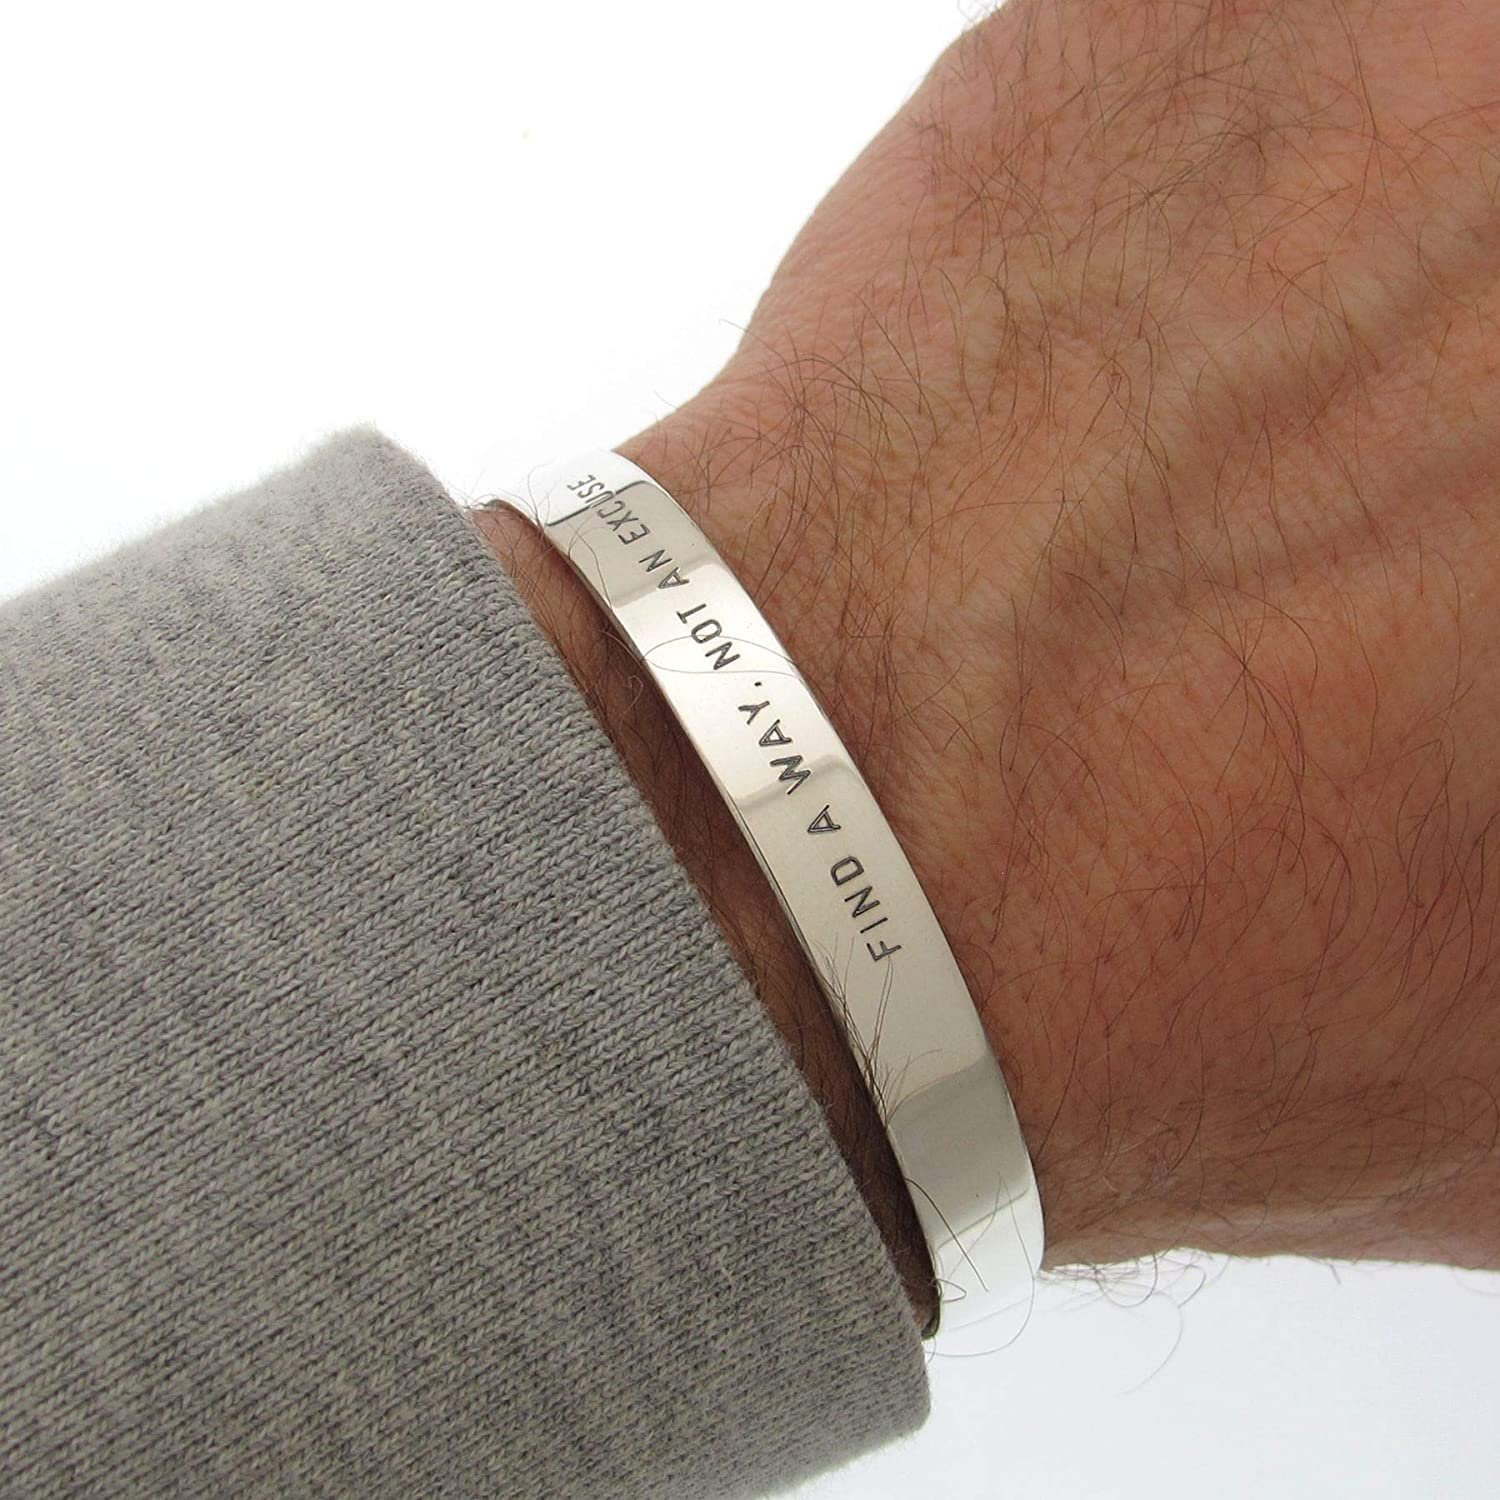 For Boyfriend Mens Leather Bracelet Cuff For Husband Gift for Men For Men Boyfriend Gift Silver Valentines Gift For Him Mens Gift